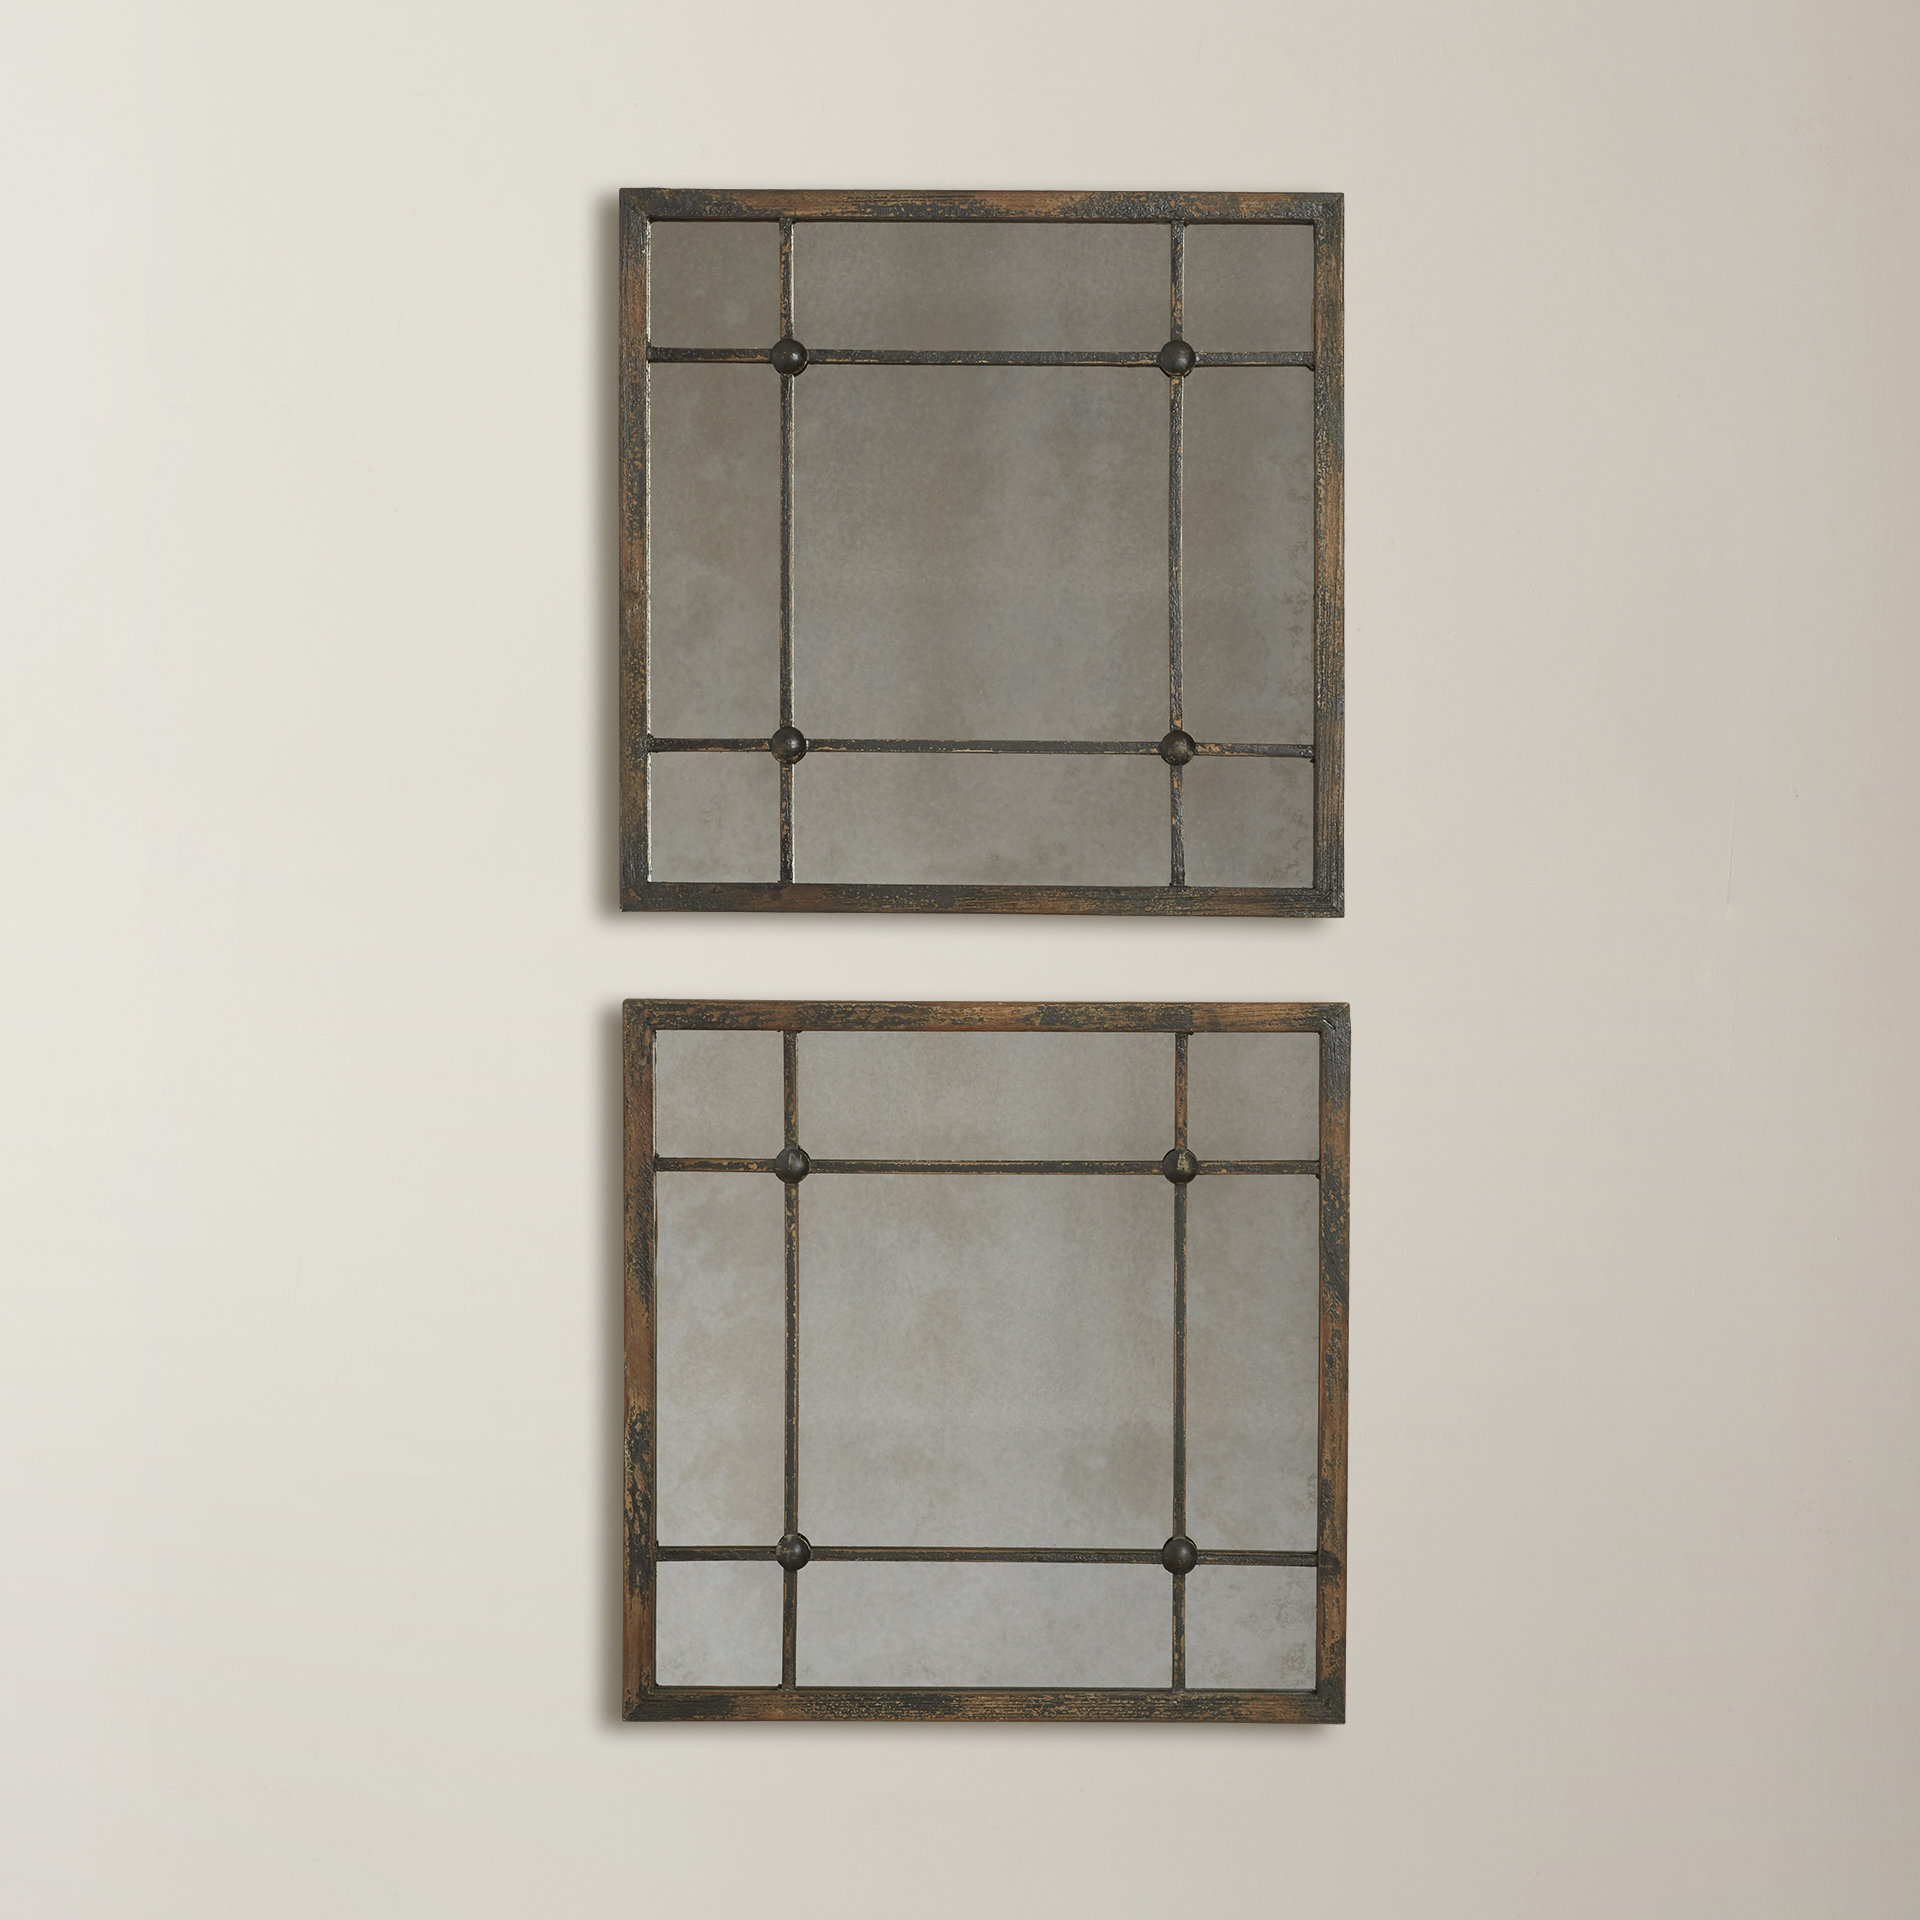 2 Piece Kissena Window Pane Accent Mirror Sets Pertaining To Latest Ophelia & Co (View 5 of 20)